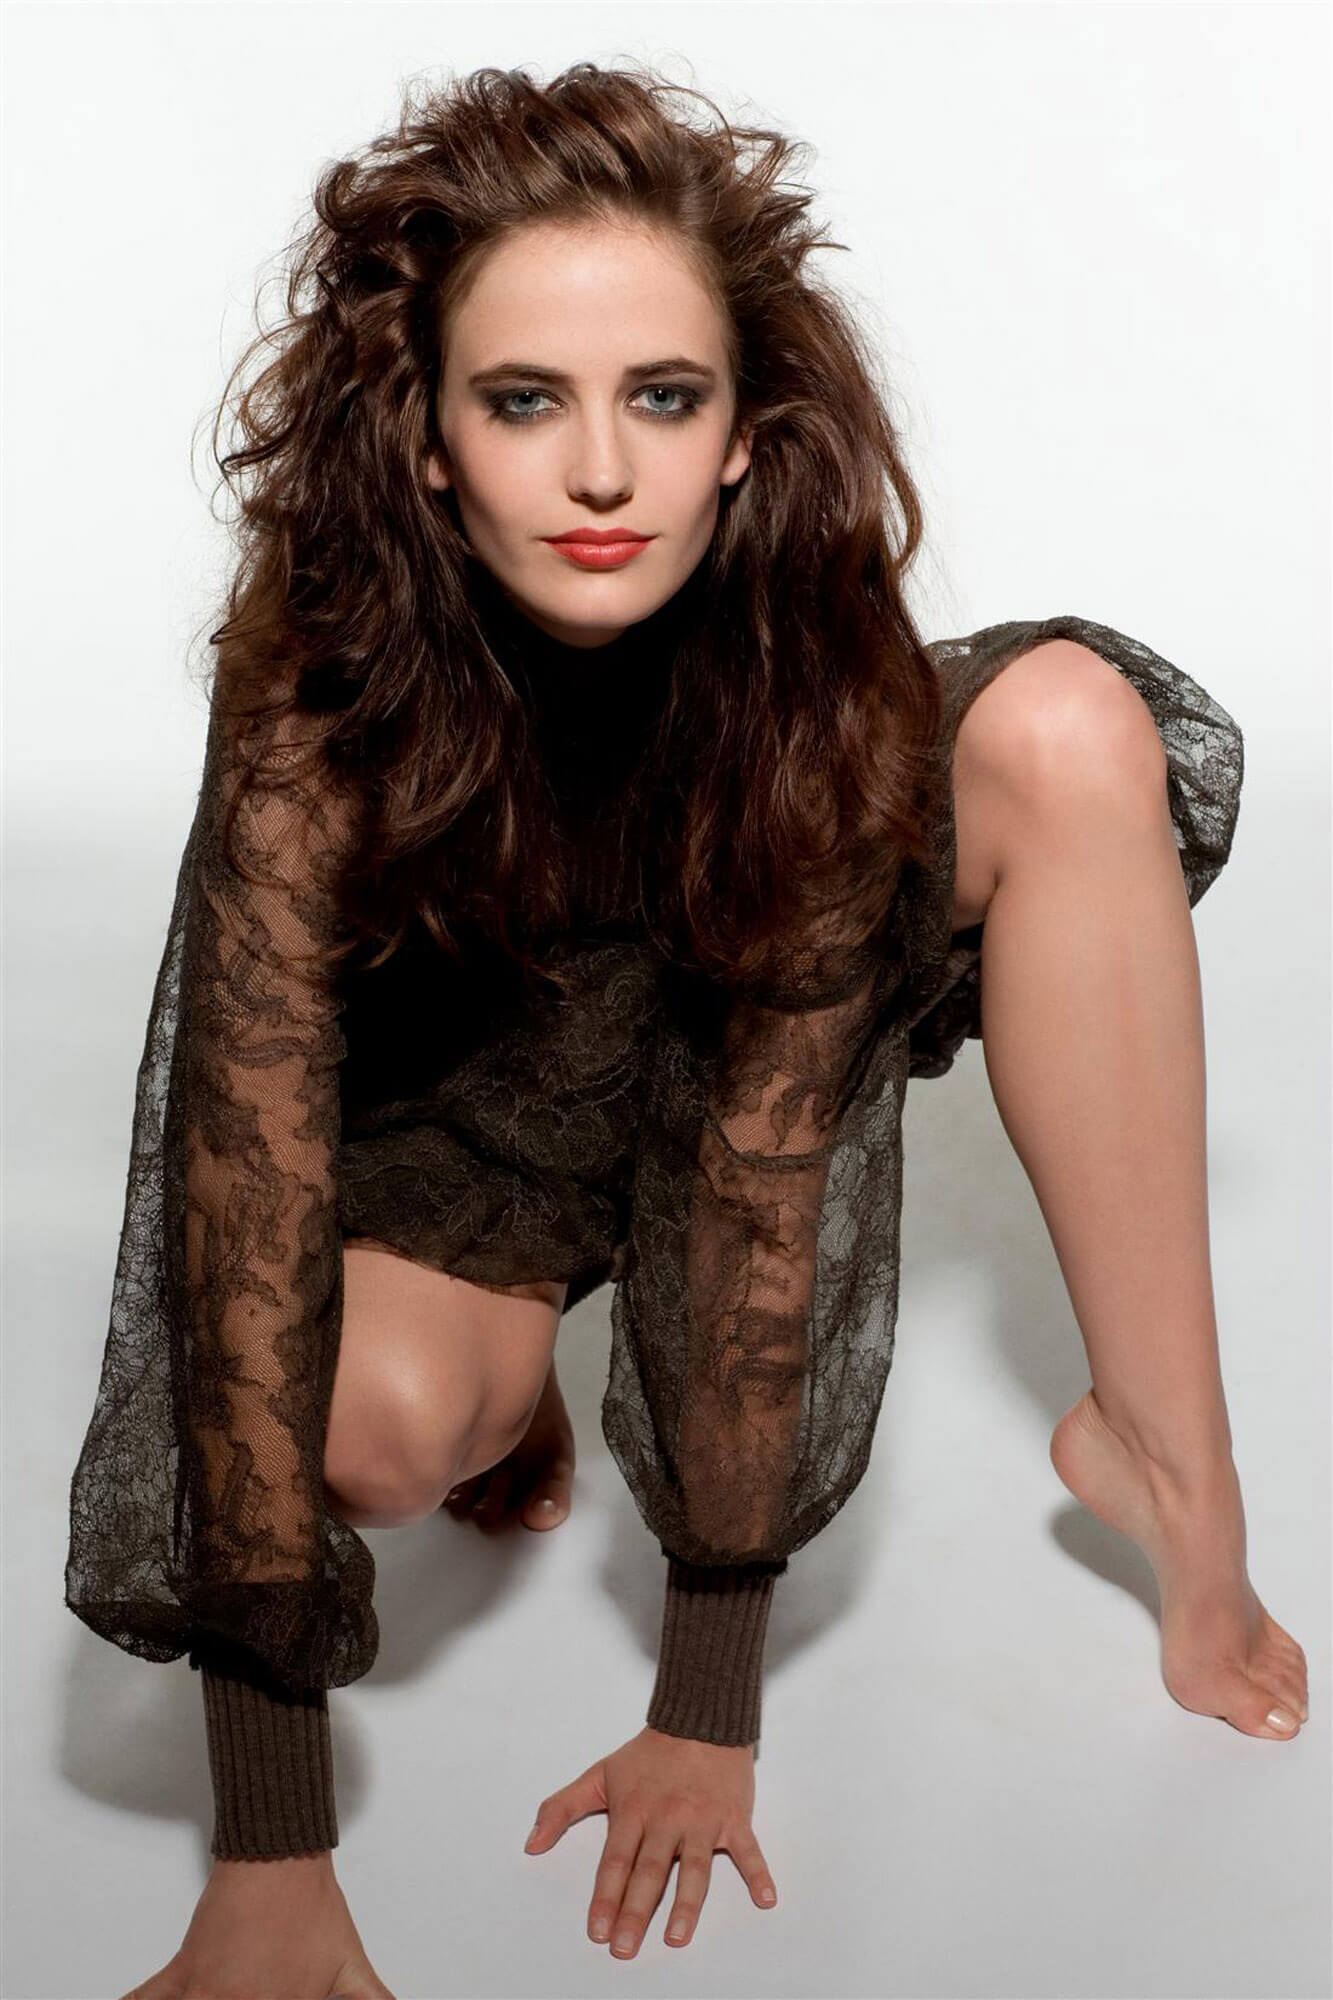 eva green Bare feet